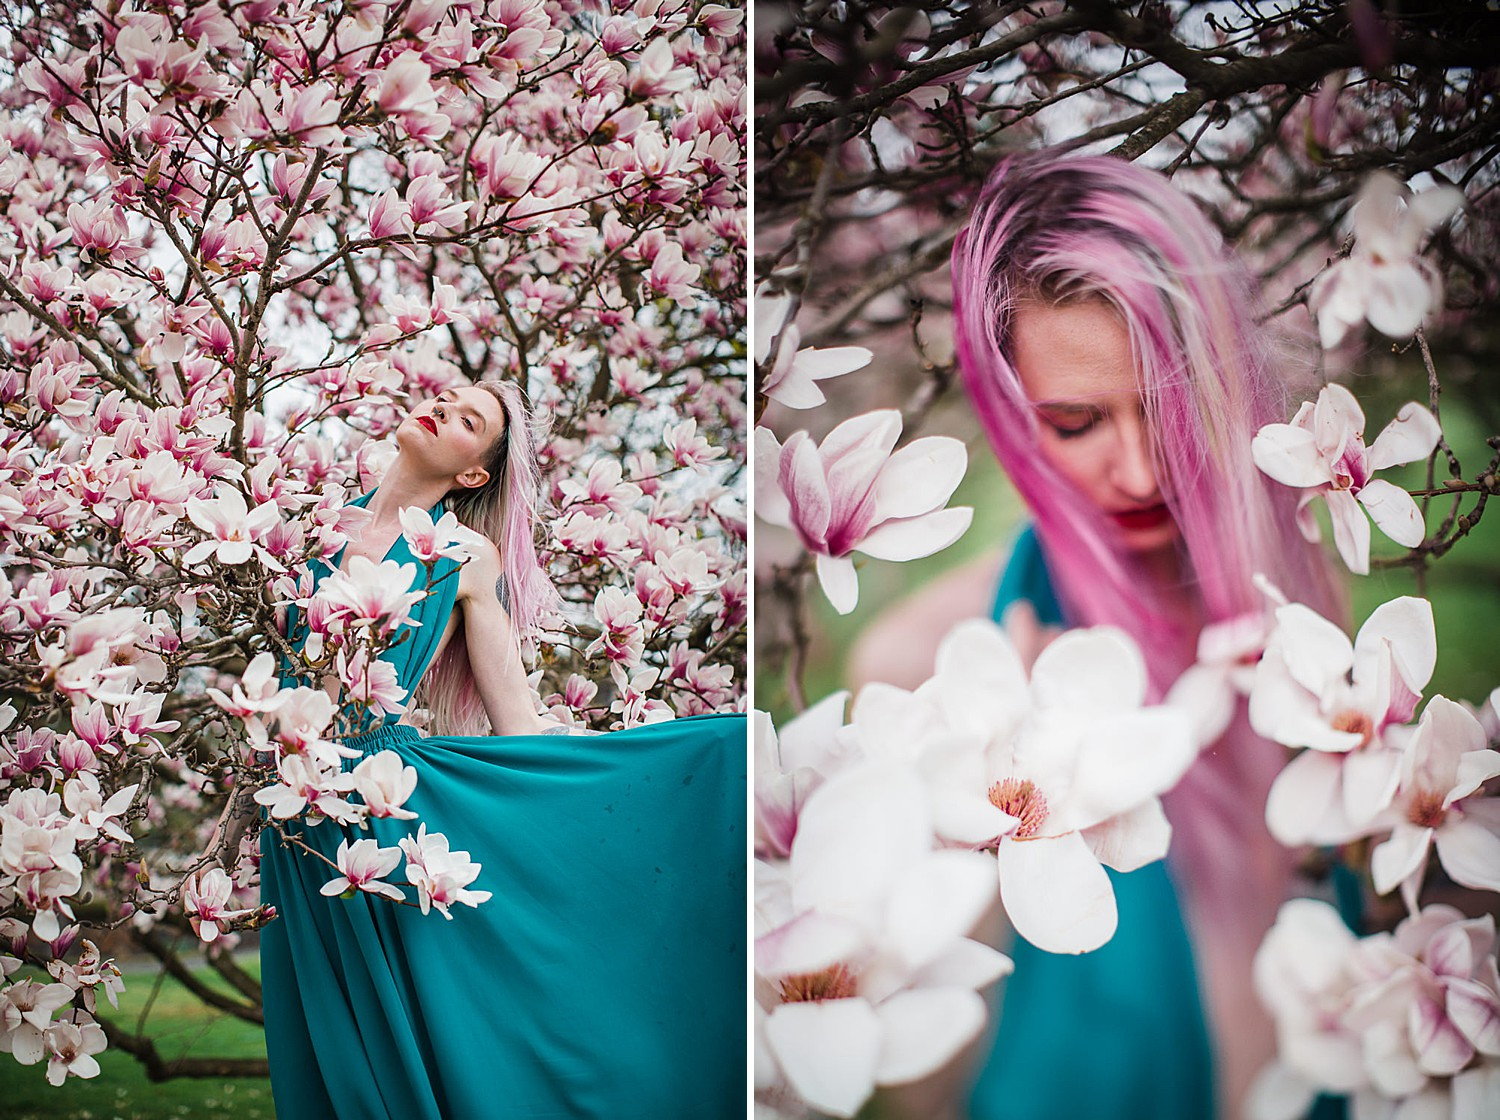 Portrait photo of a young woman with pink hair and a teal dress standing in a tree of magnolia blossoms.